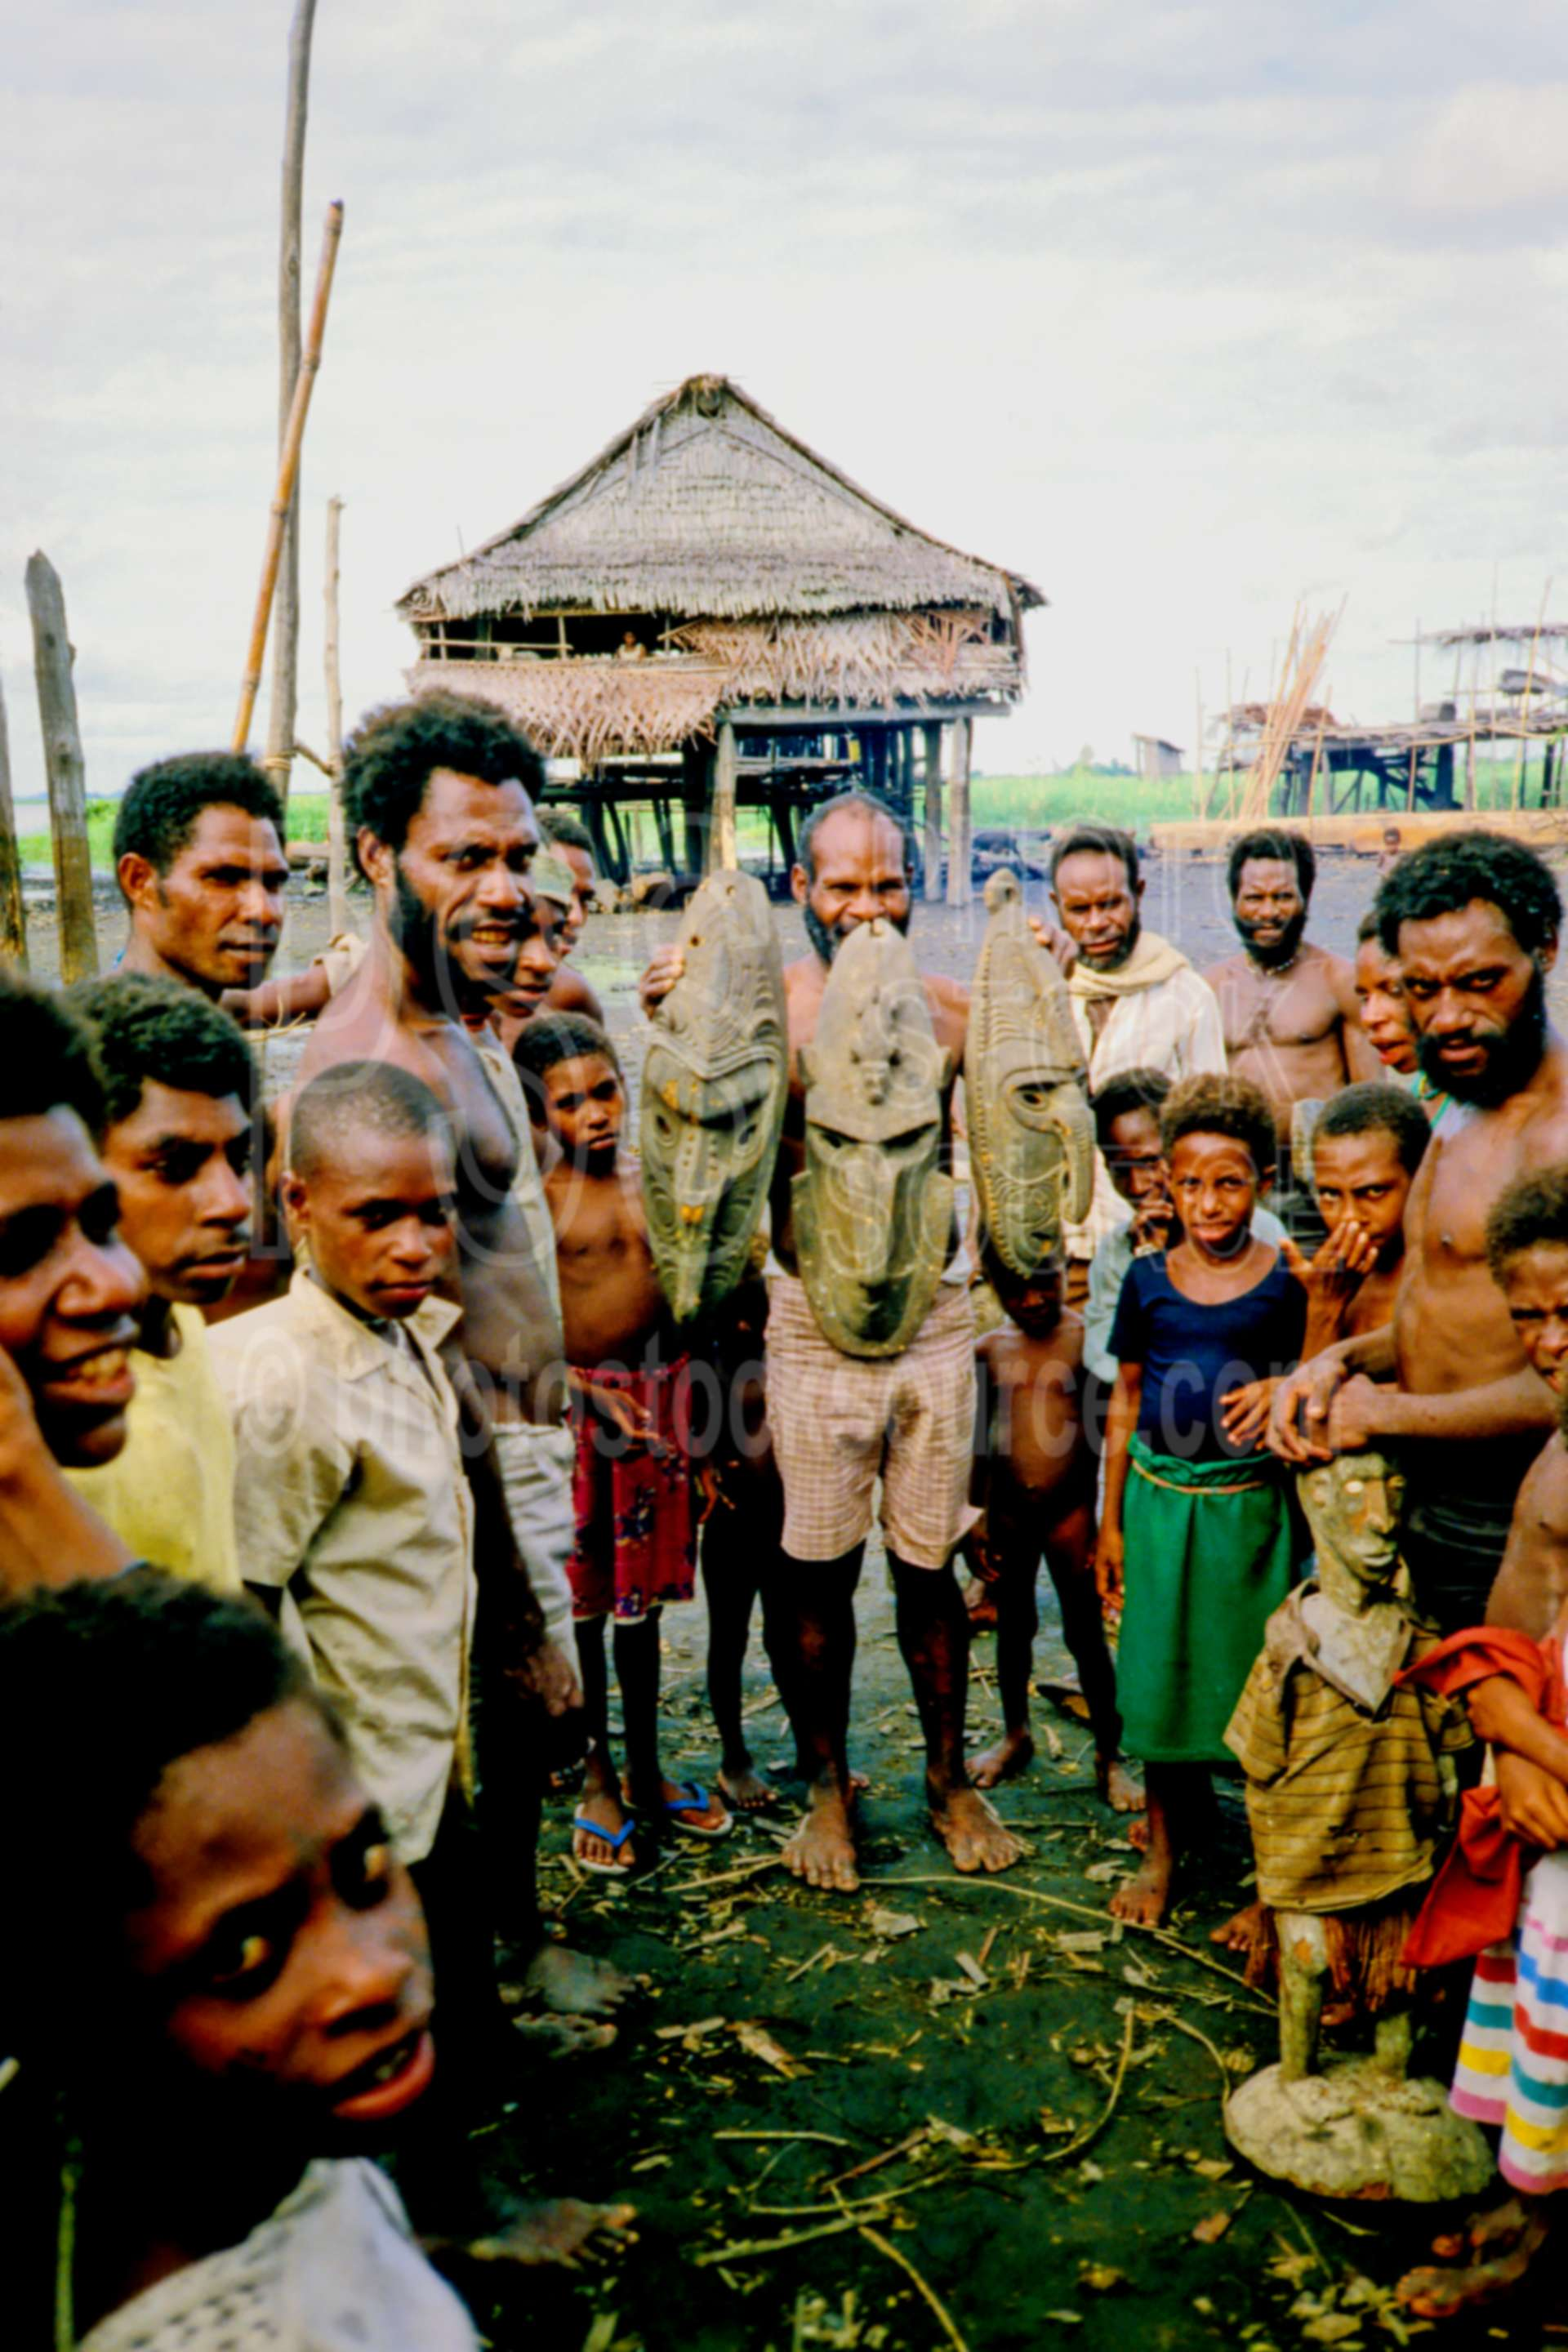 Villagers displaying artifacts,arts,artifact,carving,gathering,group,people,village,villagers,png markets